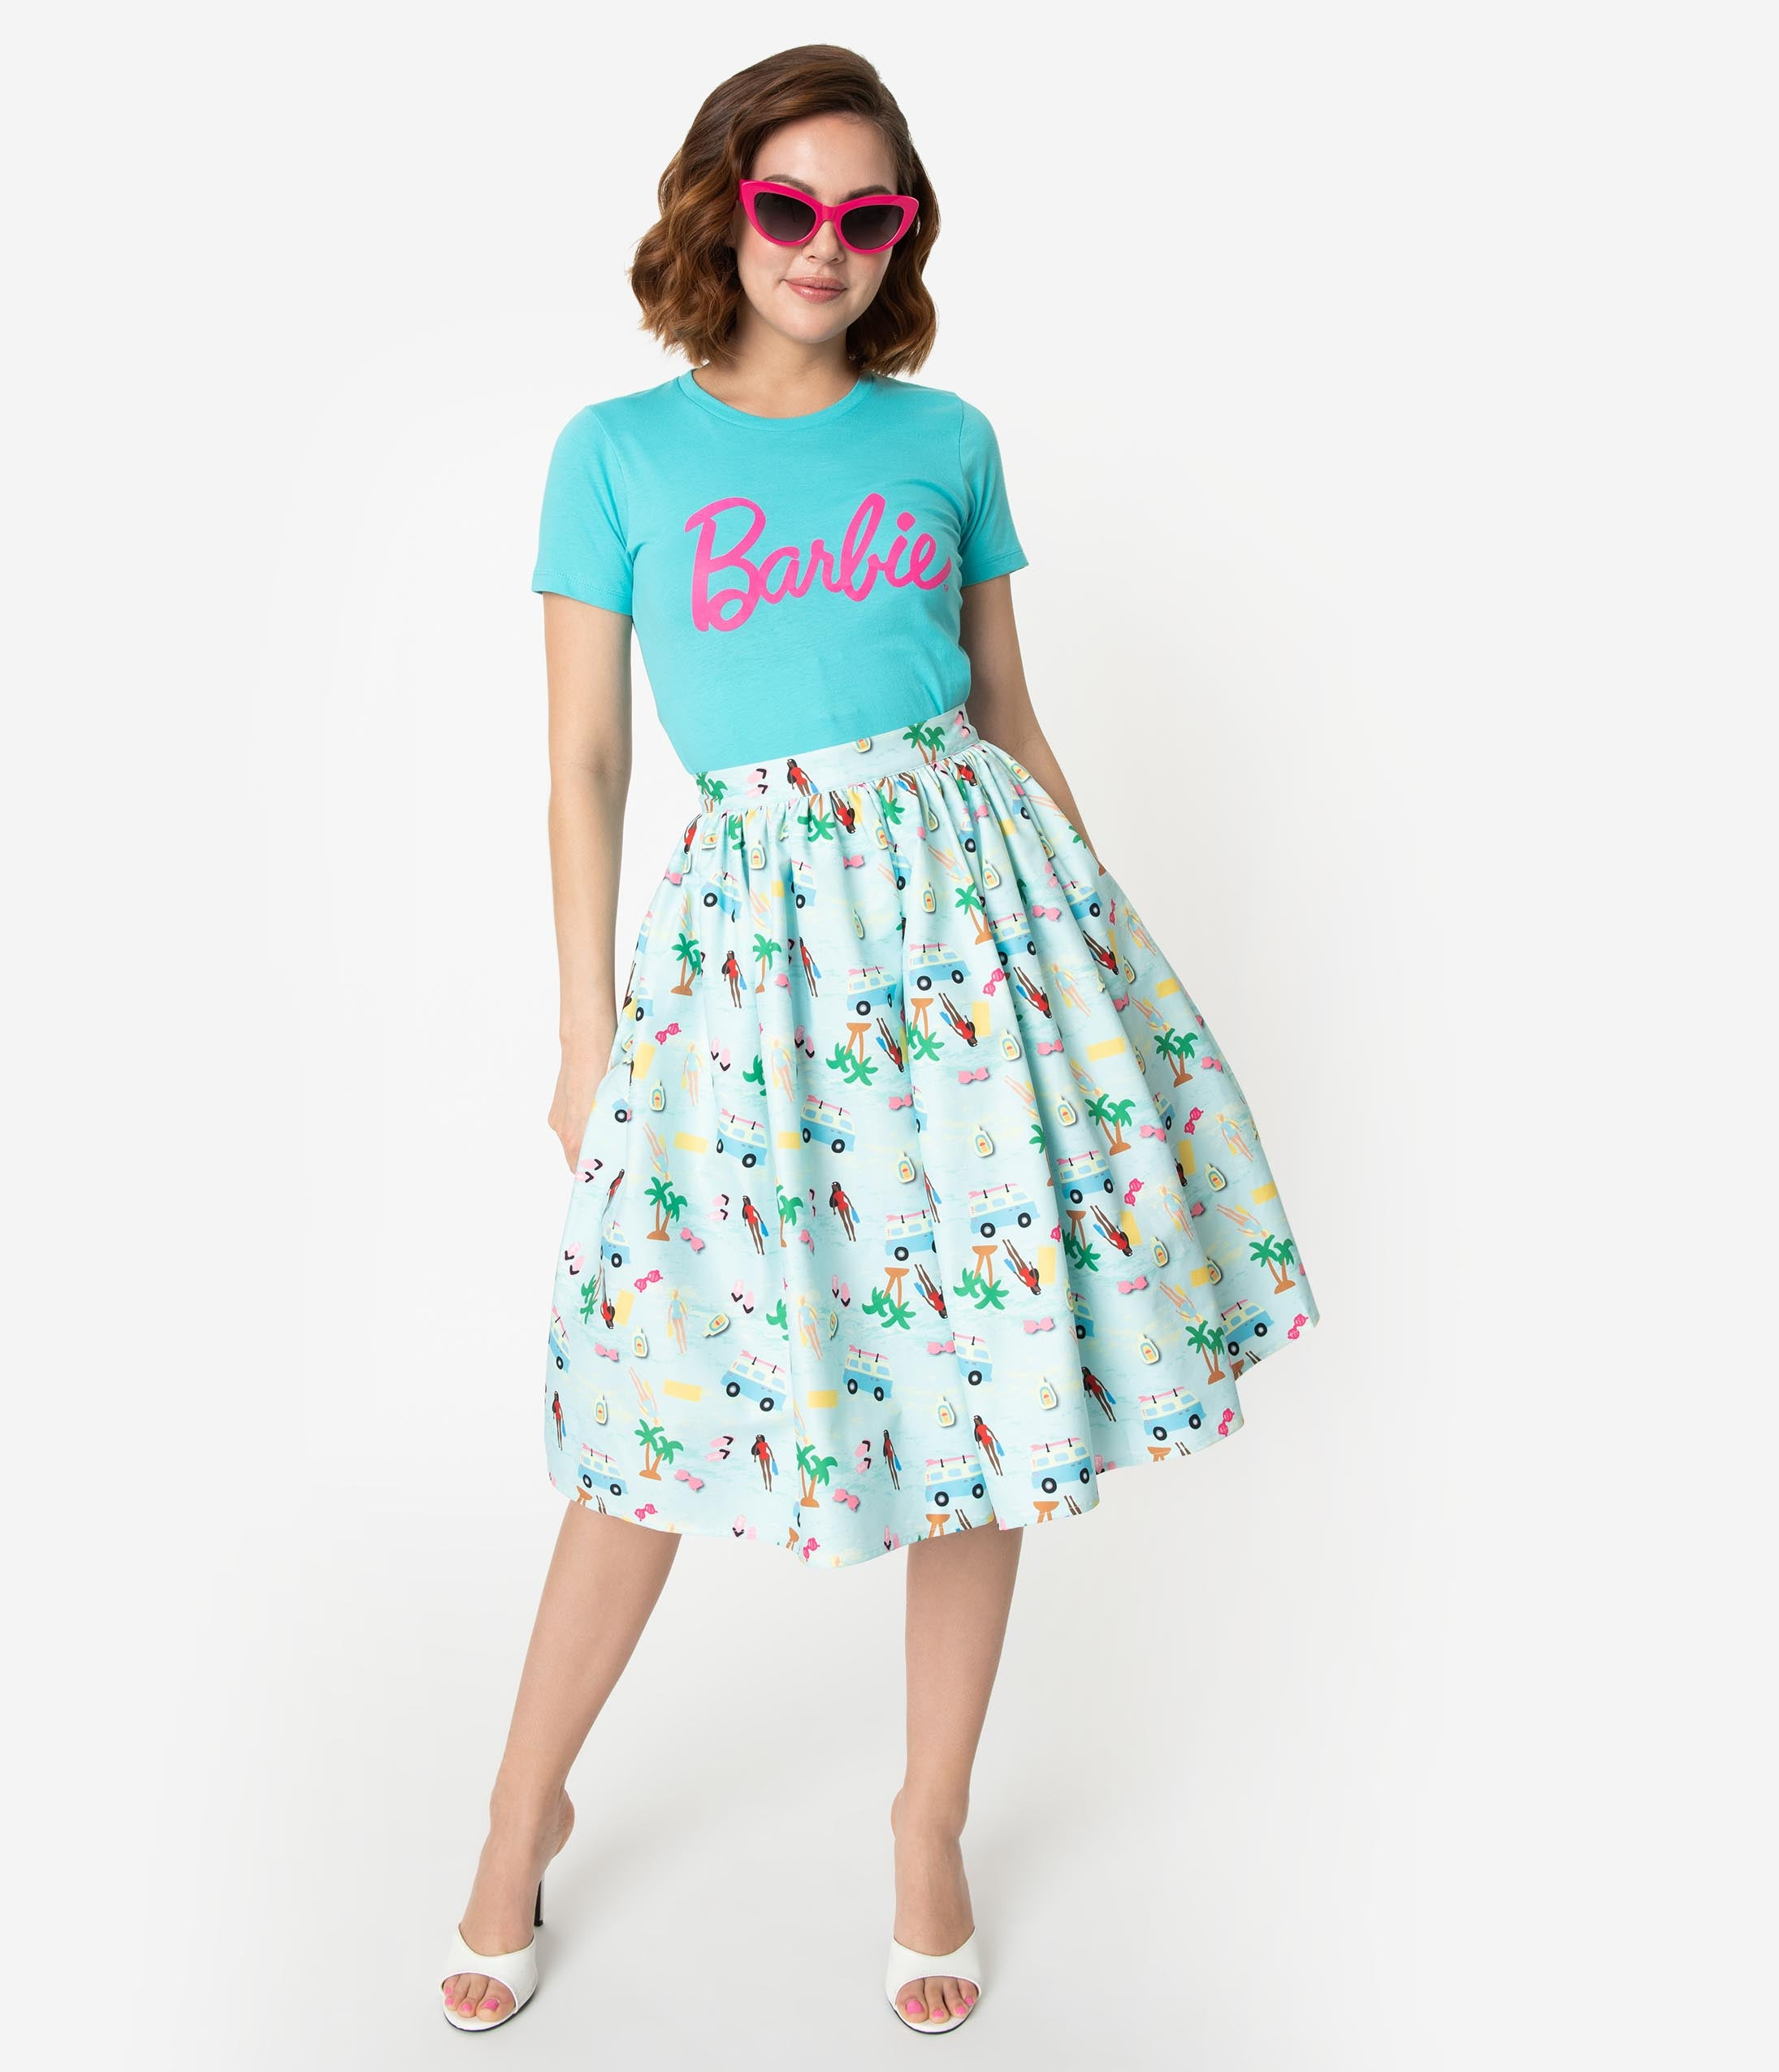 cd9c23666b7 Barbie x Unique Vintage Light Blue Barbie Vacation Adventure Swing Skirt